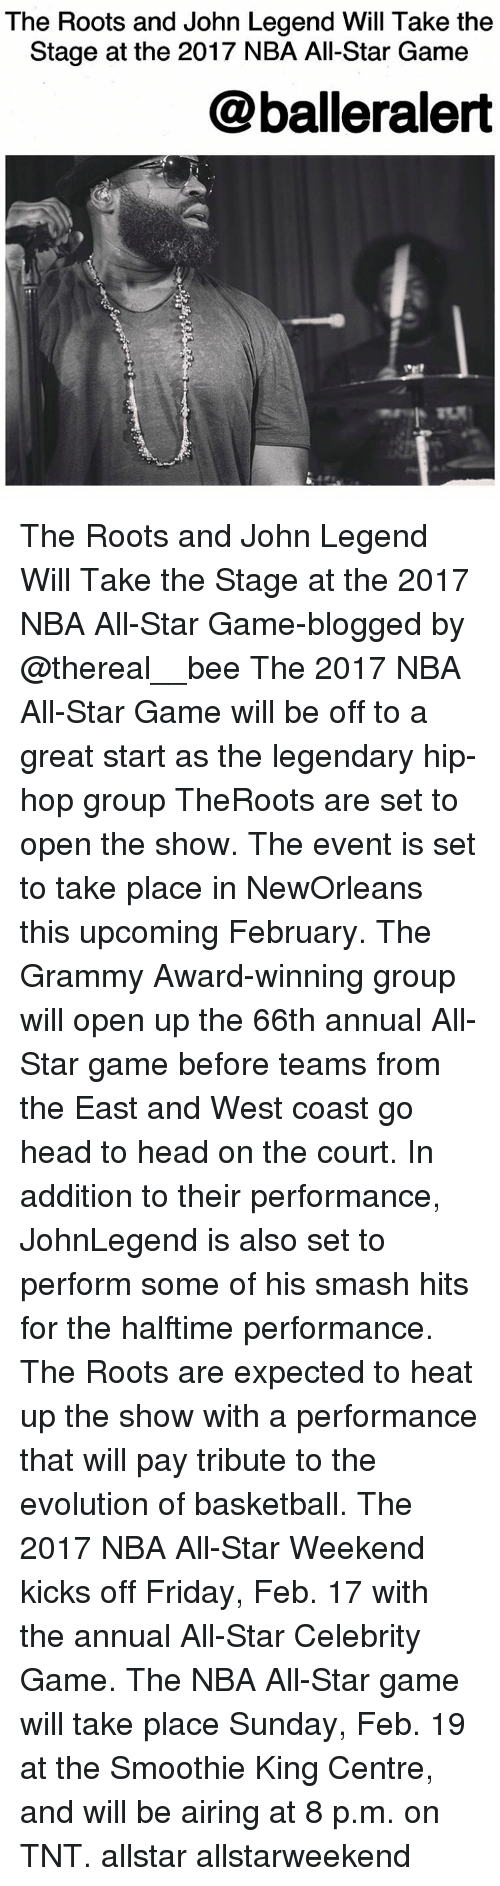 NBA All-Star Game: The Roots and John Legend Will Take the  Stage at the 2017 NBA All-Star Game  @balleralert The Roots and John Legend Will Take the Stage at the 2017 NBA All-Star Game-blogged by @thereal__bee The 2017 NBA All-Star Game will be off to a great start as the legendary hip-hop group TheRoots are set to open the show. The event is set to take place in NewOrleans this upcoming February. The Grammy Award-winning group will open up the 66th annual All-Star game before teams from the East and West coast go head to head on the court. In addition to their performance, JohnLegend is also set to perform some of his smash hits for the halftime performance. The Roots are expected to heat up the show with a performance that will pay tribute to the evolution of basketball. The 2017 NBA All-Star Weekend kicks off Friday, Feb. 17 with the annual All-Star Celebrity Game. The NBA All-Star game will take place Sunday, Feb. 19 at the Smoothie King Centre, and will be airing at 8 p.m. on TNT. allstar allstarweekend